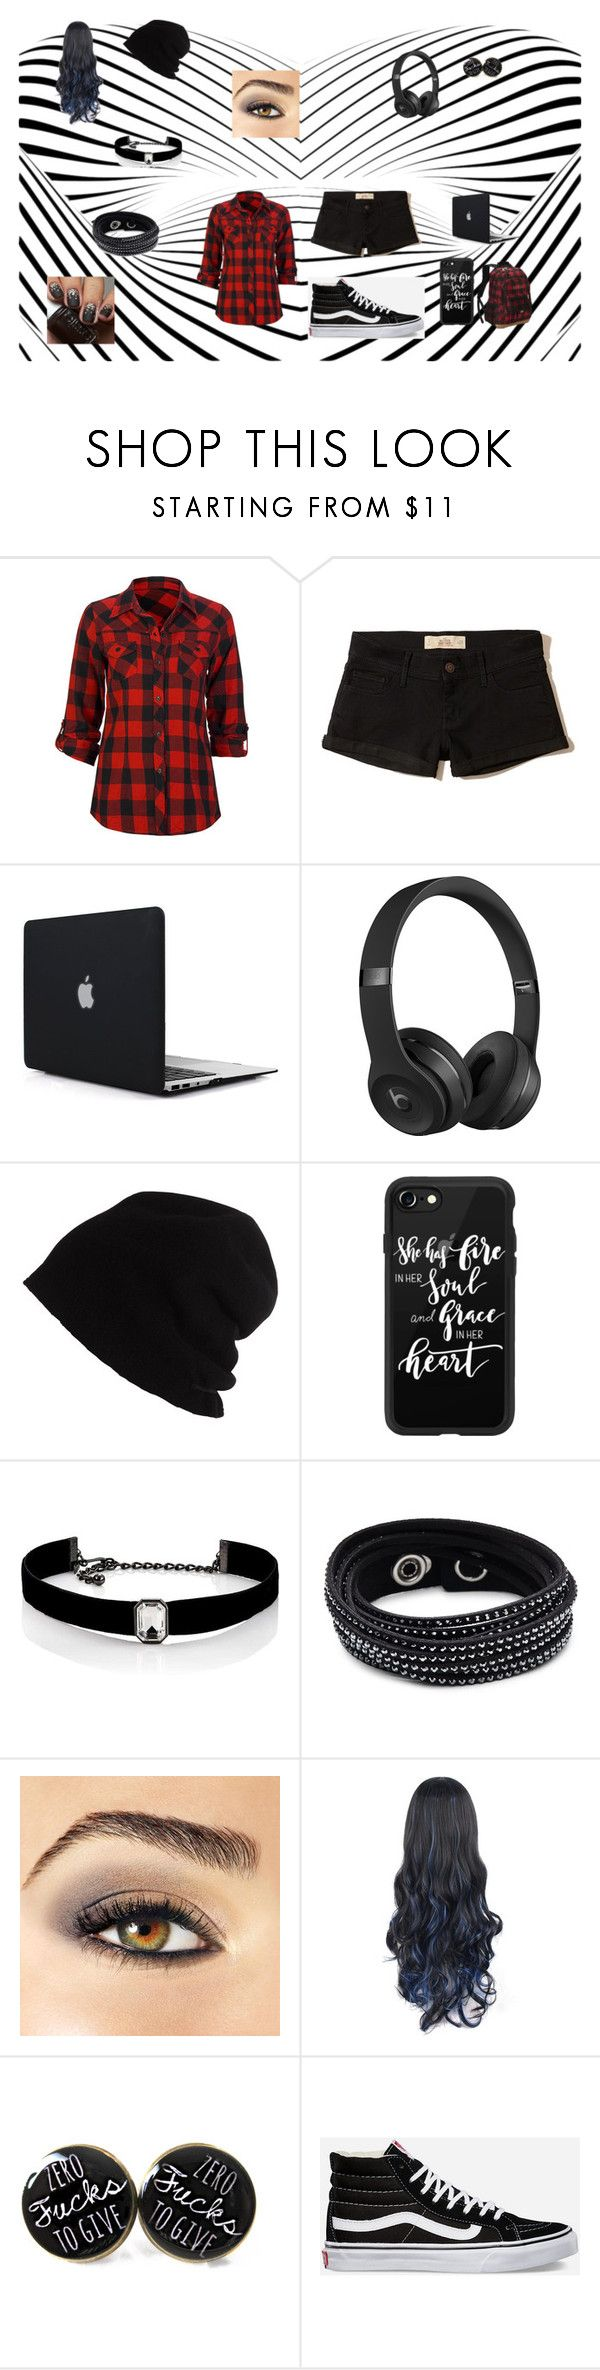 I Like Black...And Red by luxempiress on Polyvore featuring Full Tilt, Hollister Co., Vans, Eastsport, Swarovski, Kenneth Jay Lane, SCHA, Casetify, Beats by Dr. Dre and Avon